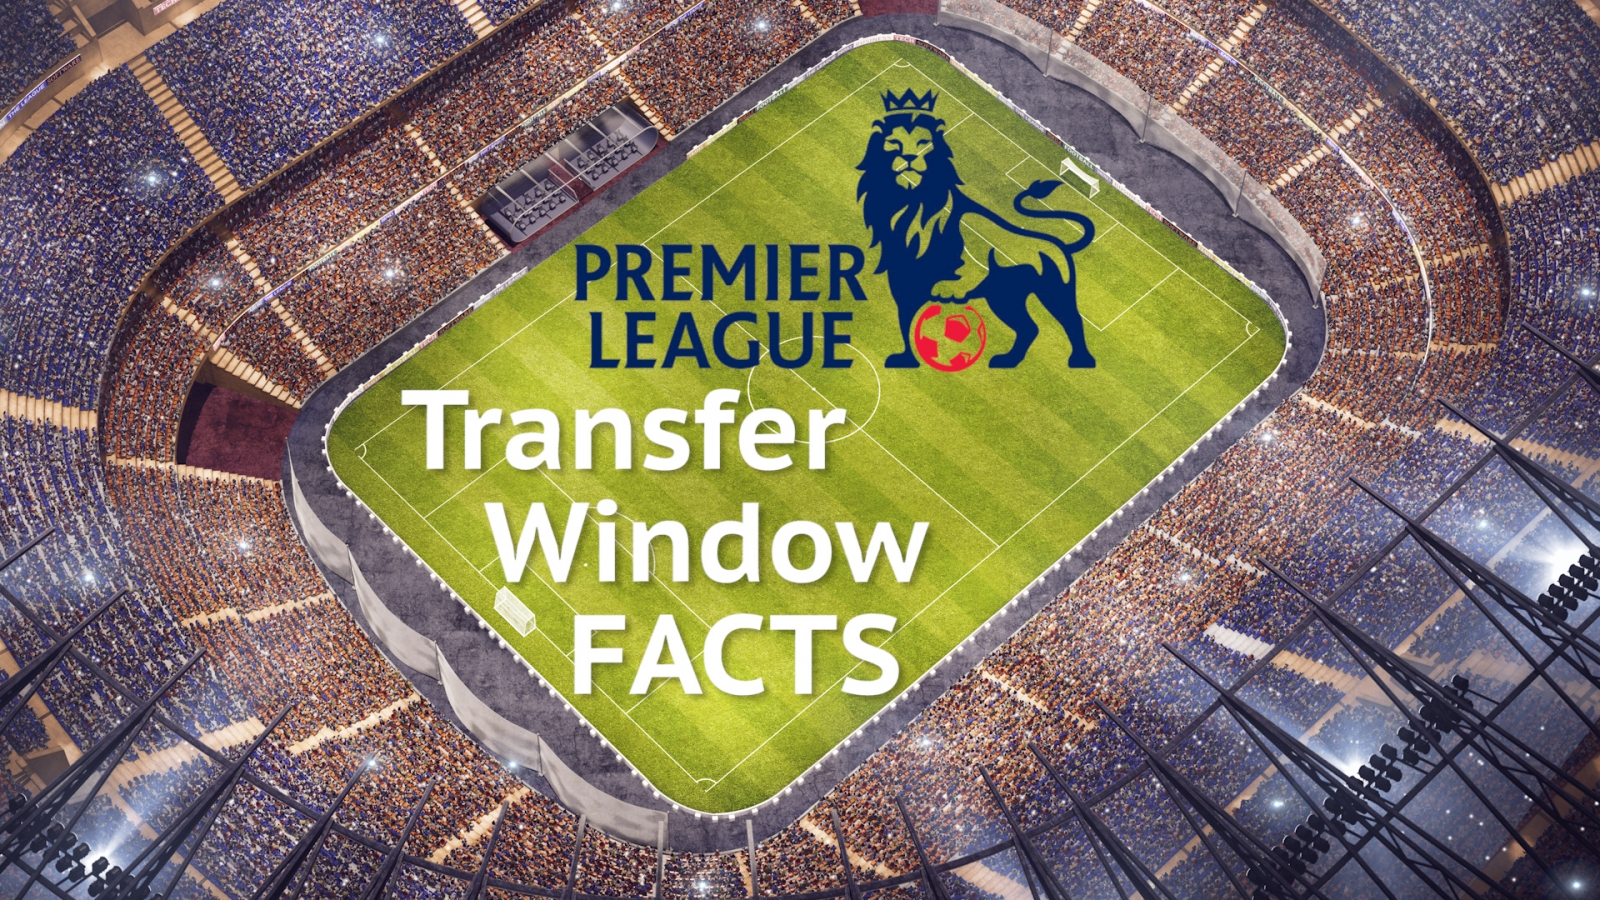 Premier League 2015-16 transfer window facts